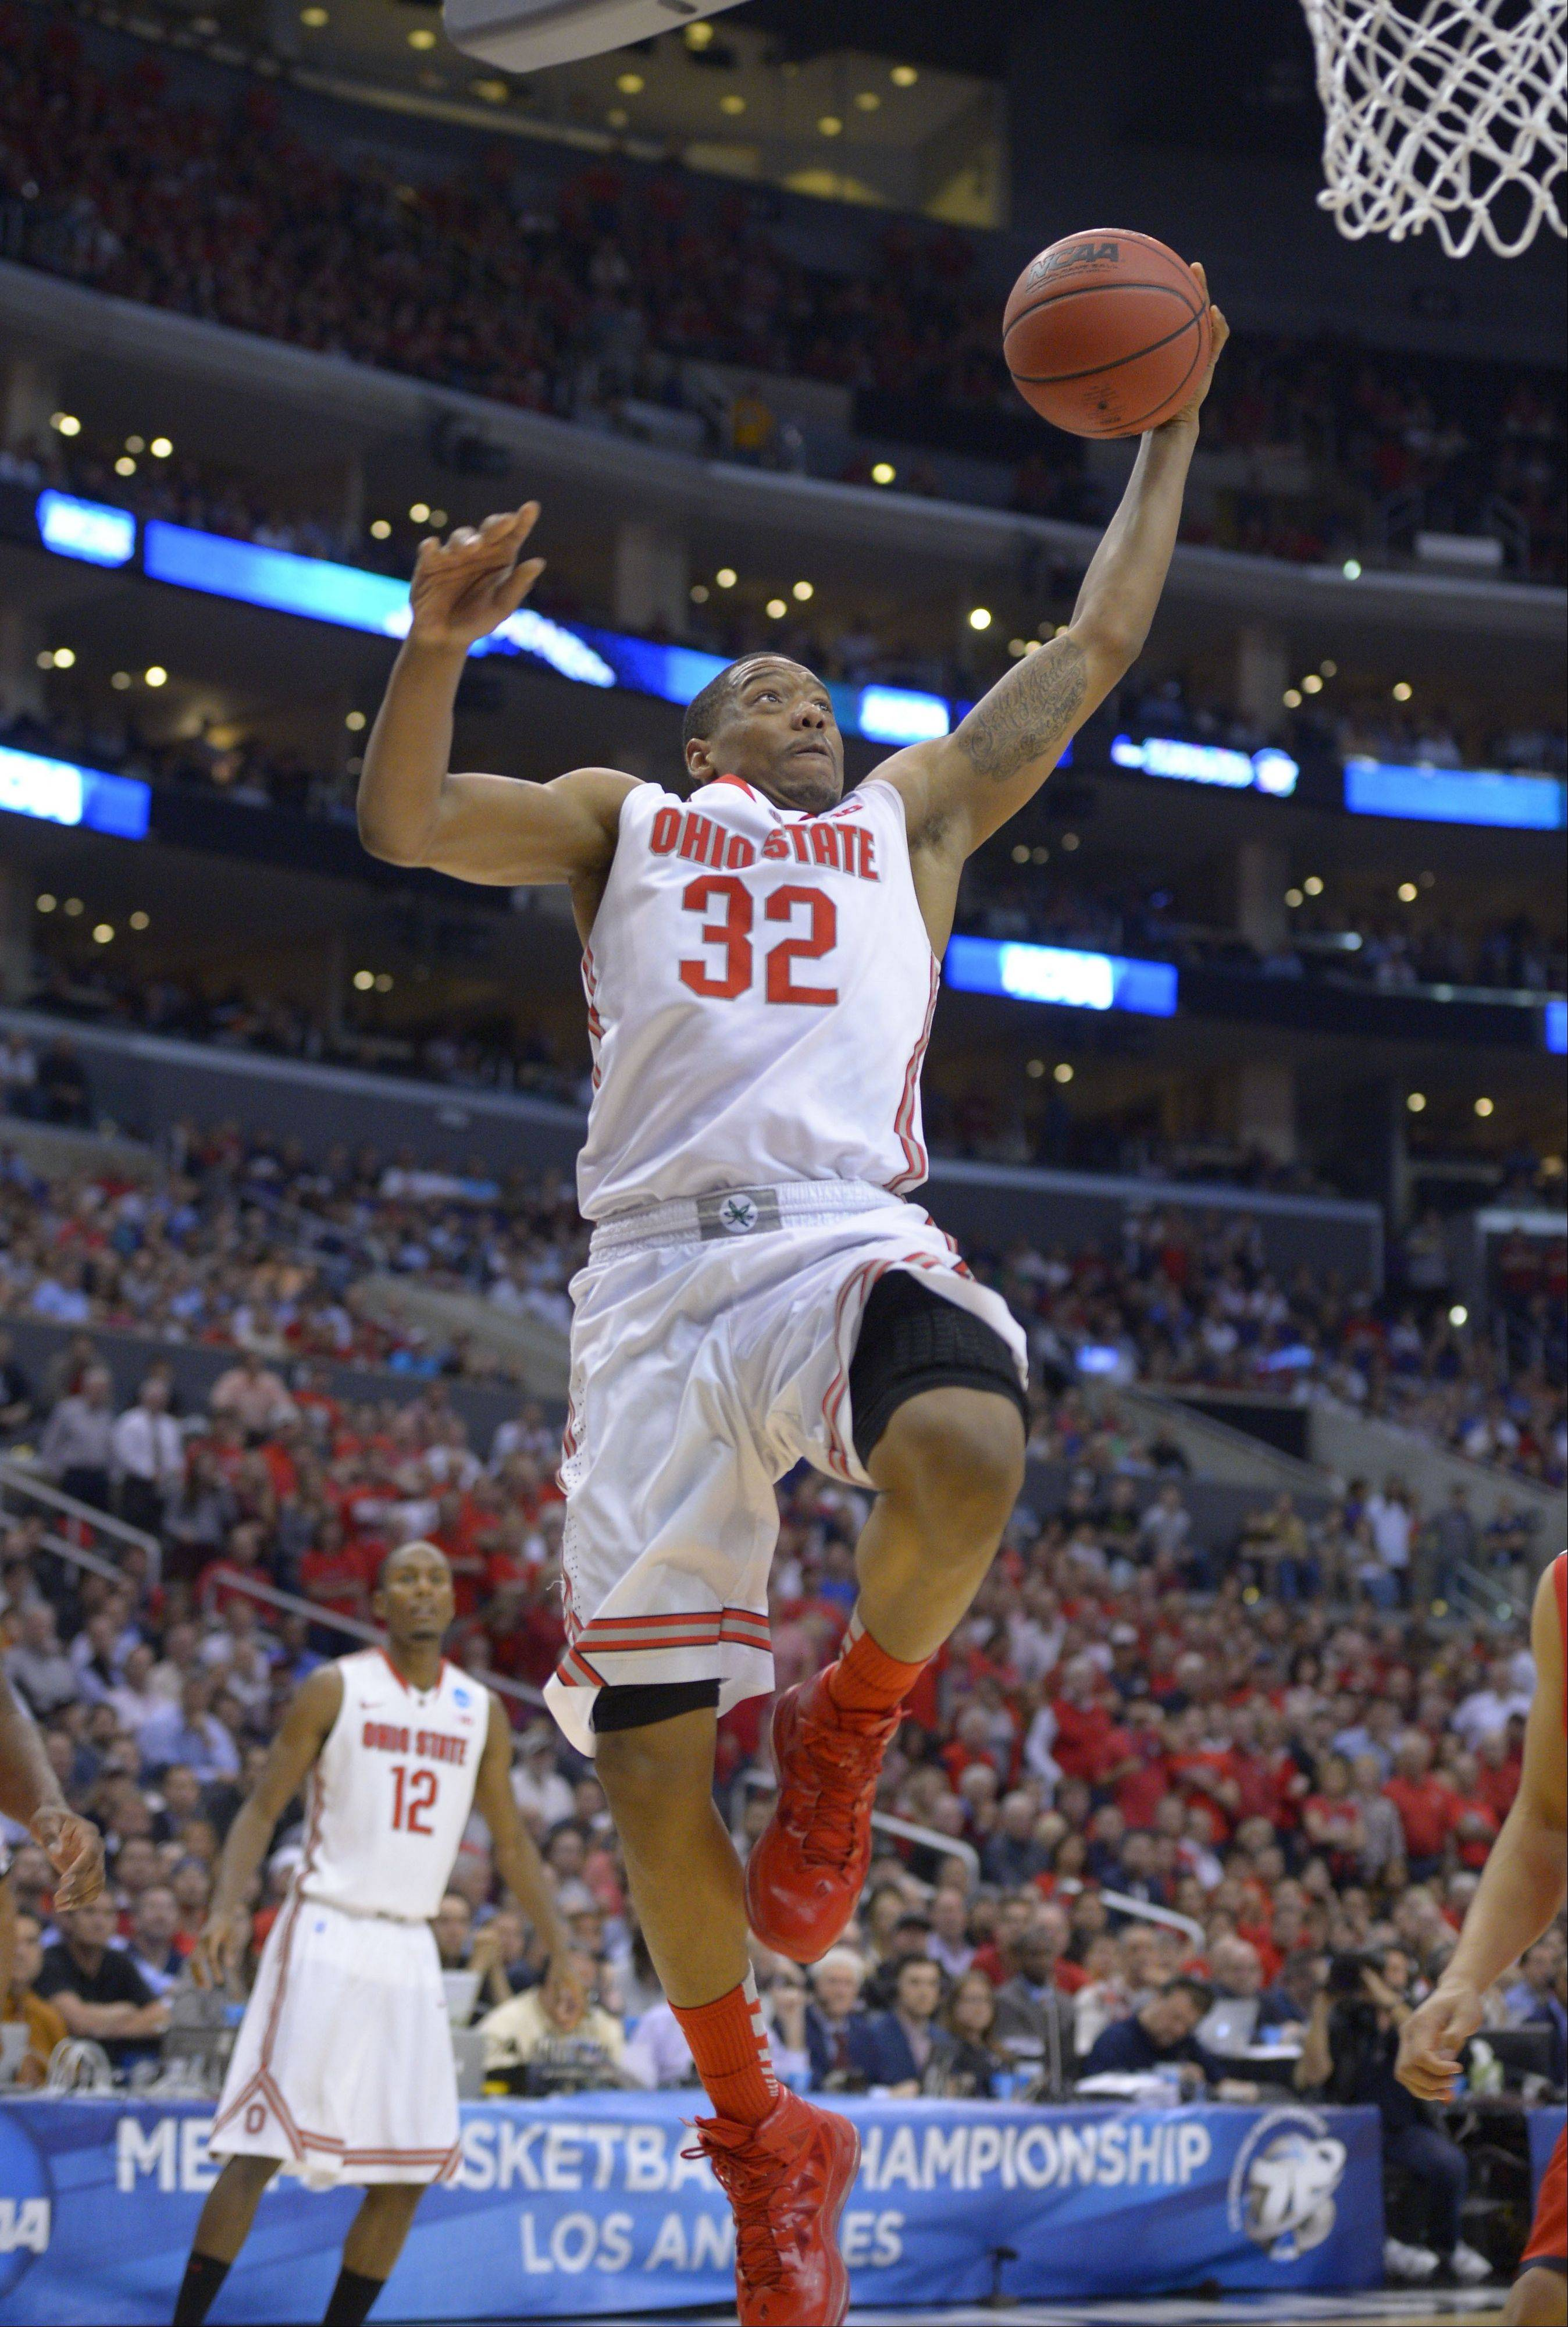 Ohio State's Lenzelle Smith Jr. is part of a veteran crew that includes two seniors and seven juniors from a 29-win squad that came within a whisper of a second straight trip to the Final Four.